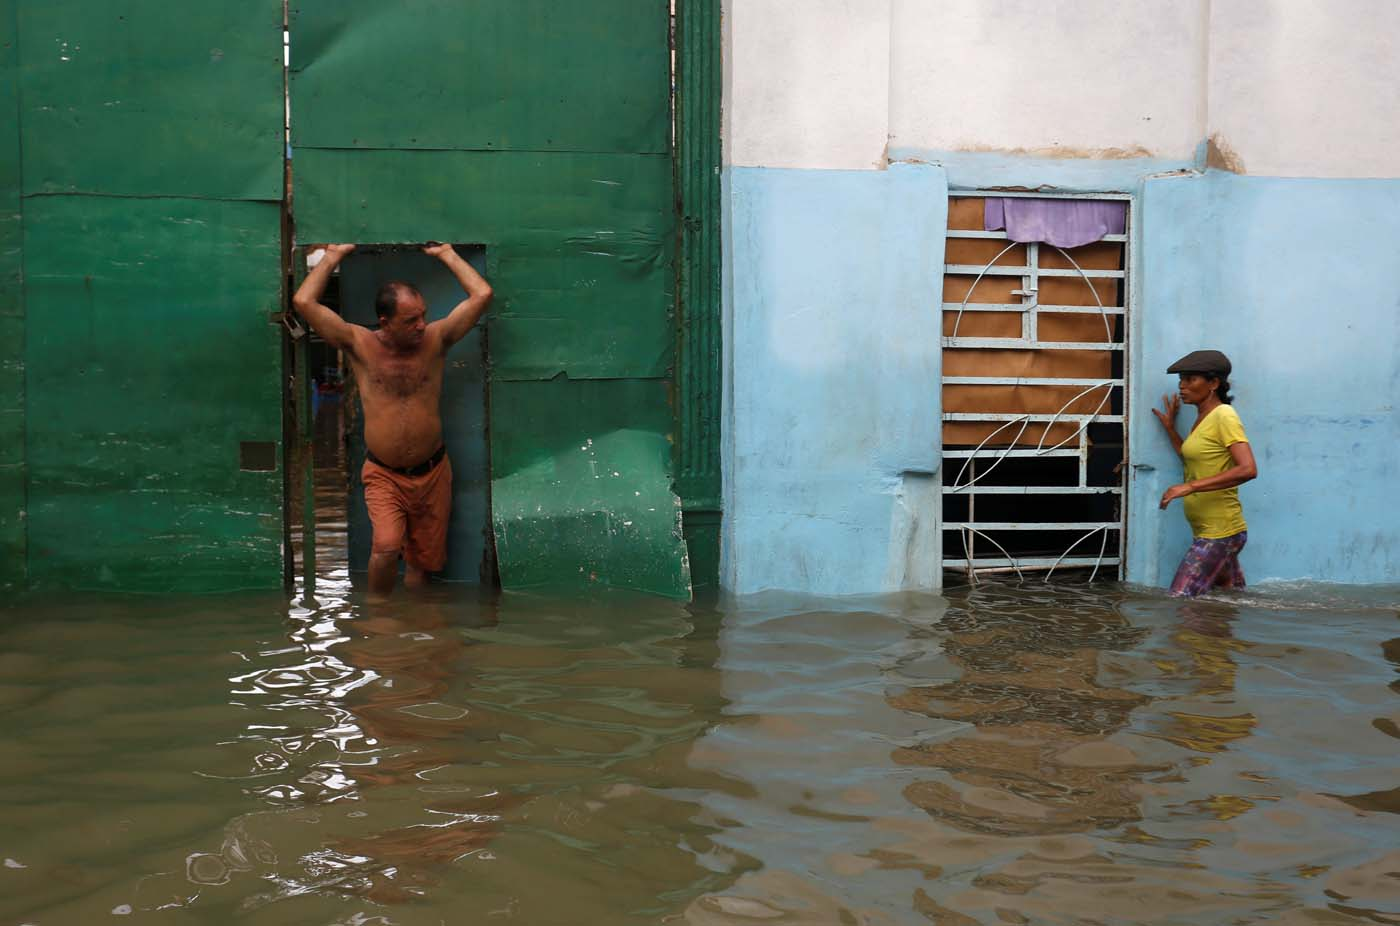 People are seen in a flooded street, after the passing of Hurricane Irma, in Havana, Cuba September 10, 2017. REUTERS/Stringer NO SALES. NO ARCHIVES